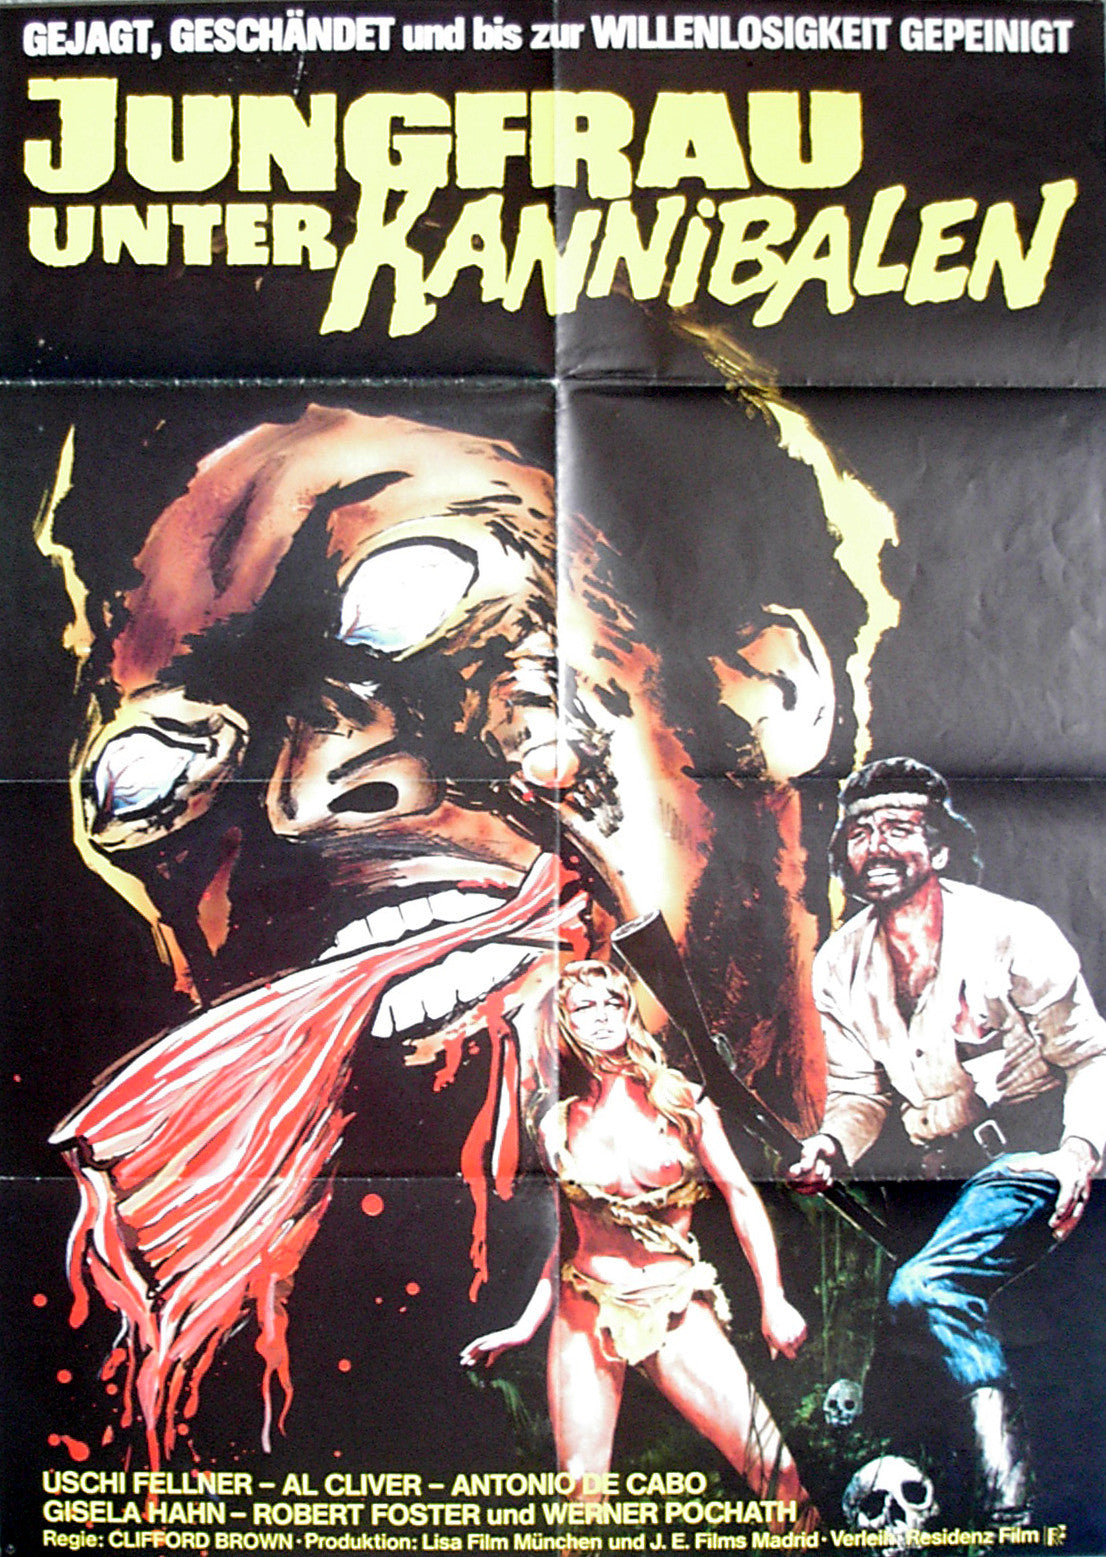 DEVIL HUNTER - German poster